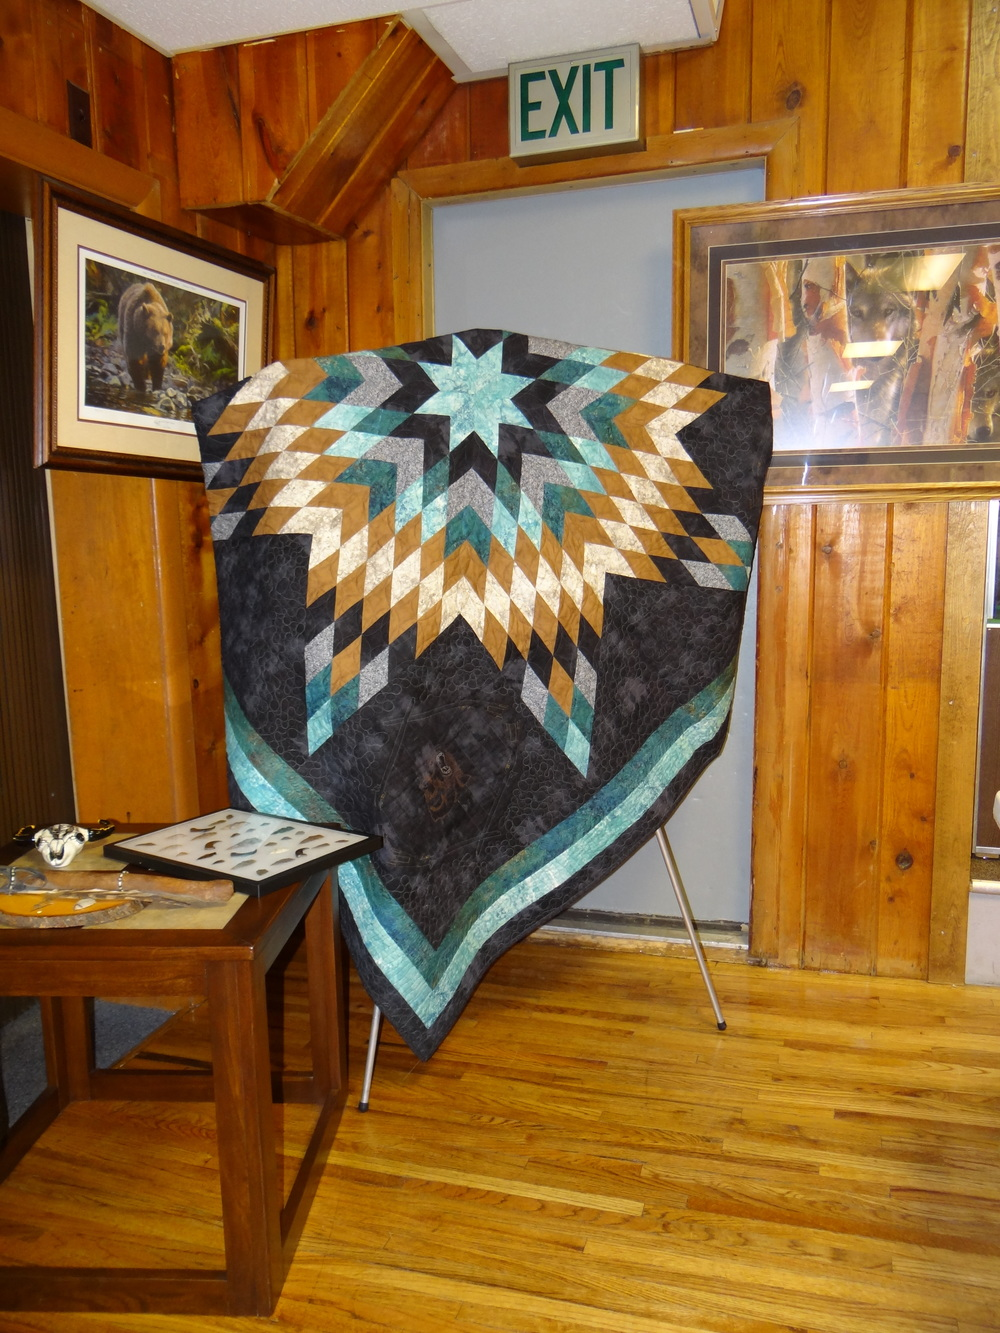 Hand made Star Quilt by Noelle Benson.